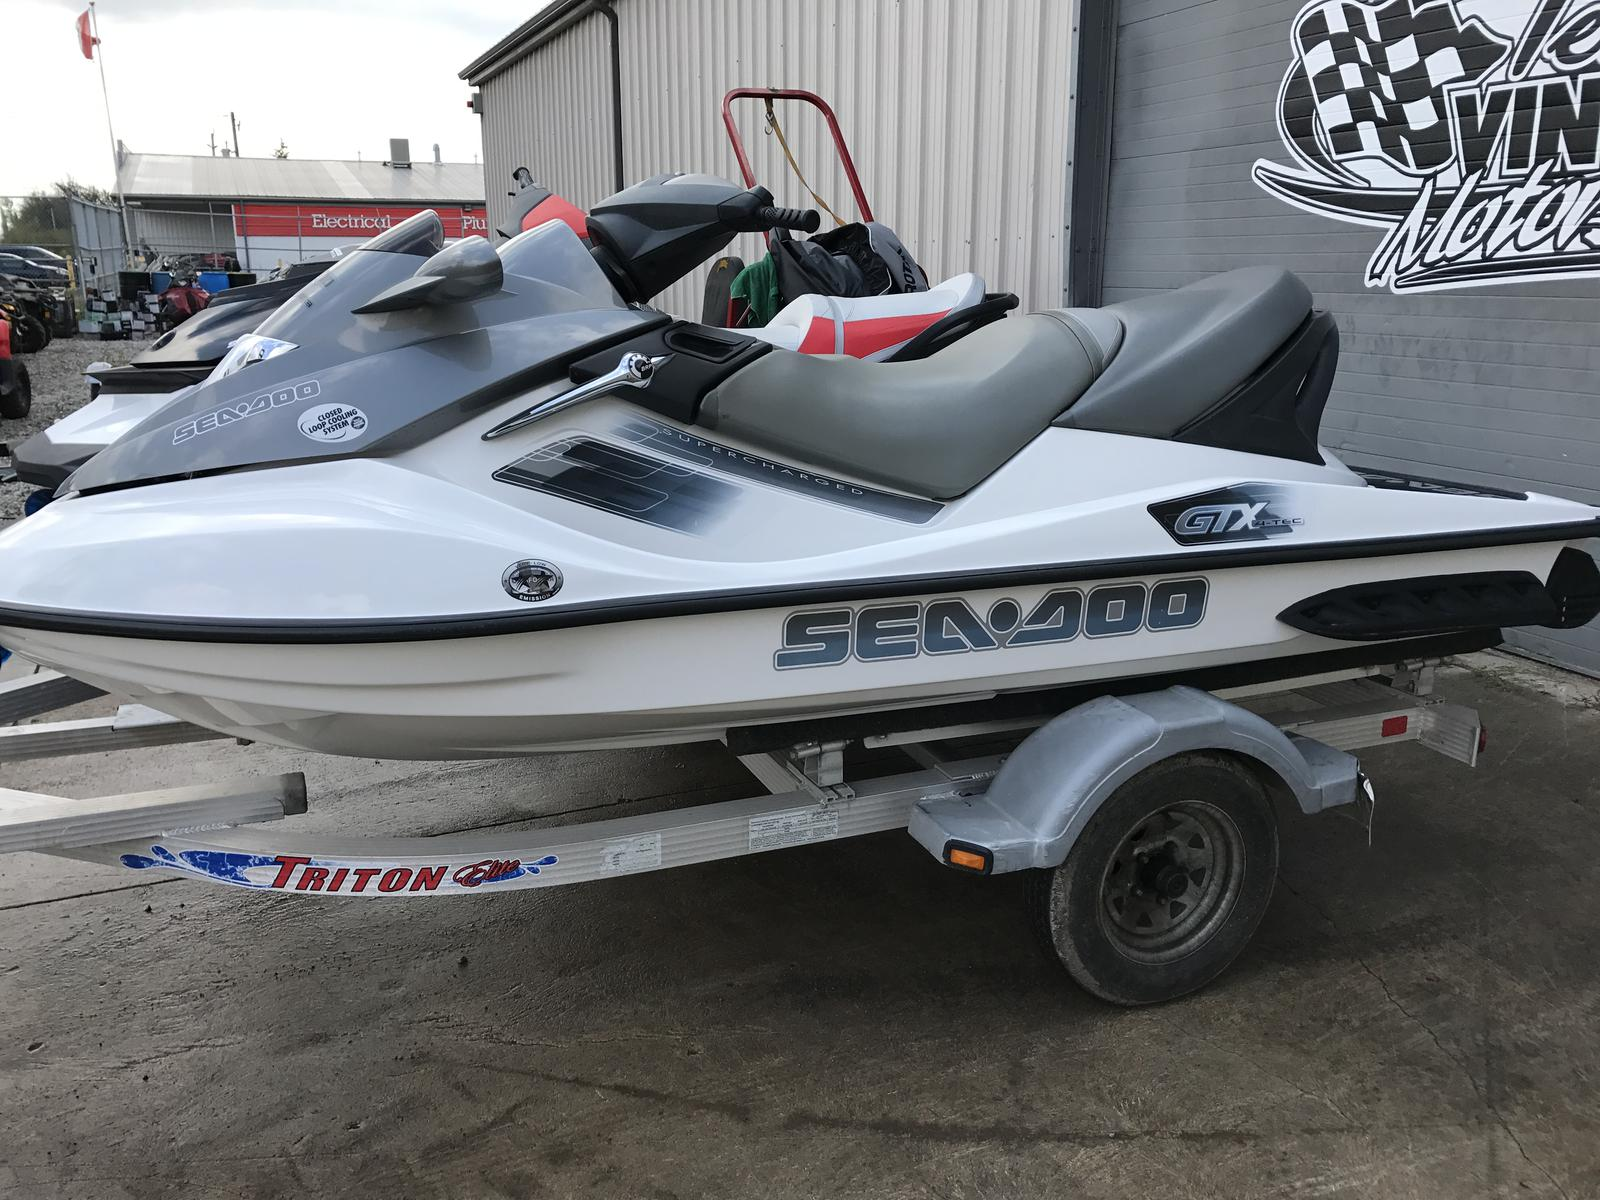 For Sale: 2006 Sea Doo Pwc Gtx 185 Sc ft<br/>Team Vincent Motorsports Inc